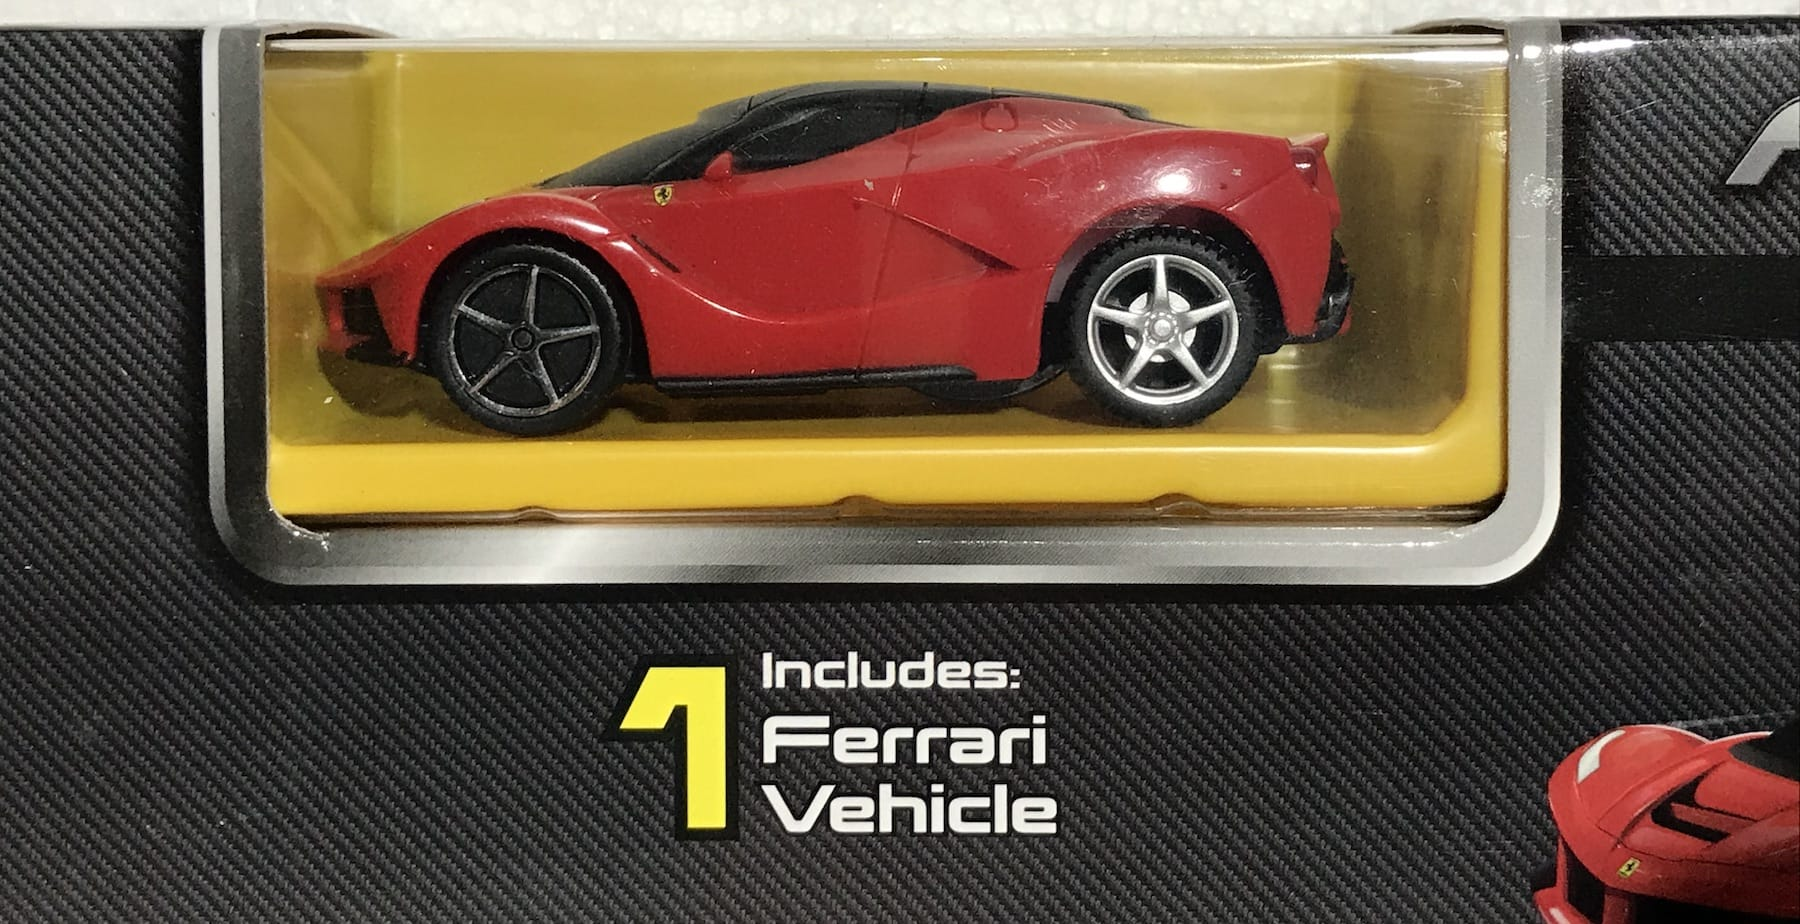 Ferrari Race and Play Speed Track Loop Jump Go Gears Model Toy Childs Kids Dads Birthdays Collectors Gift